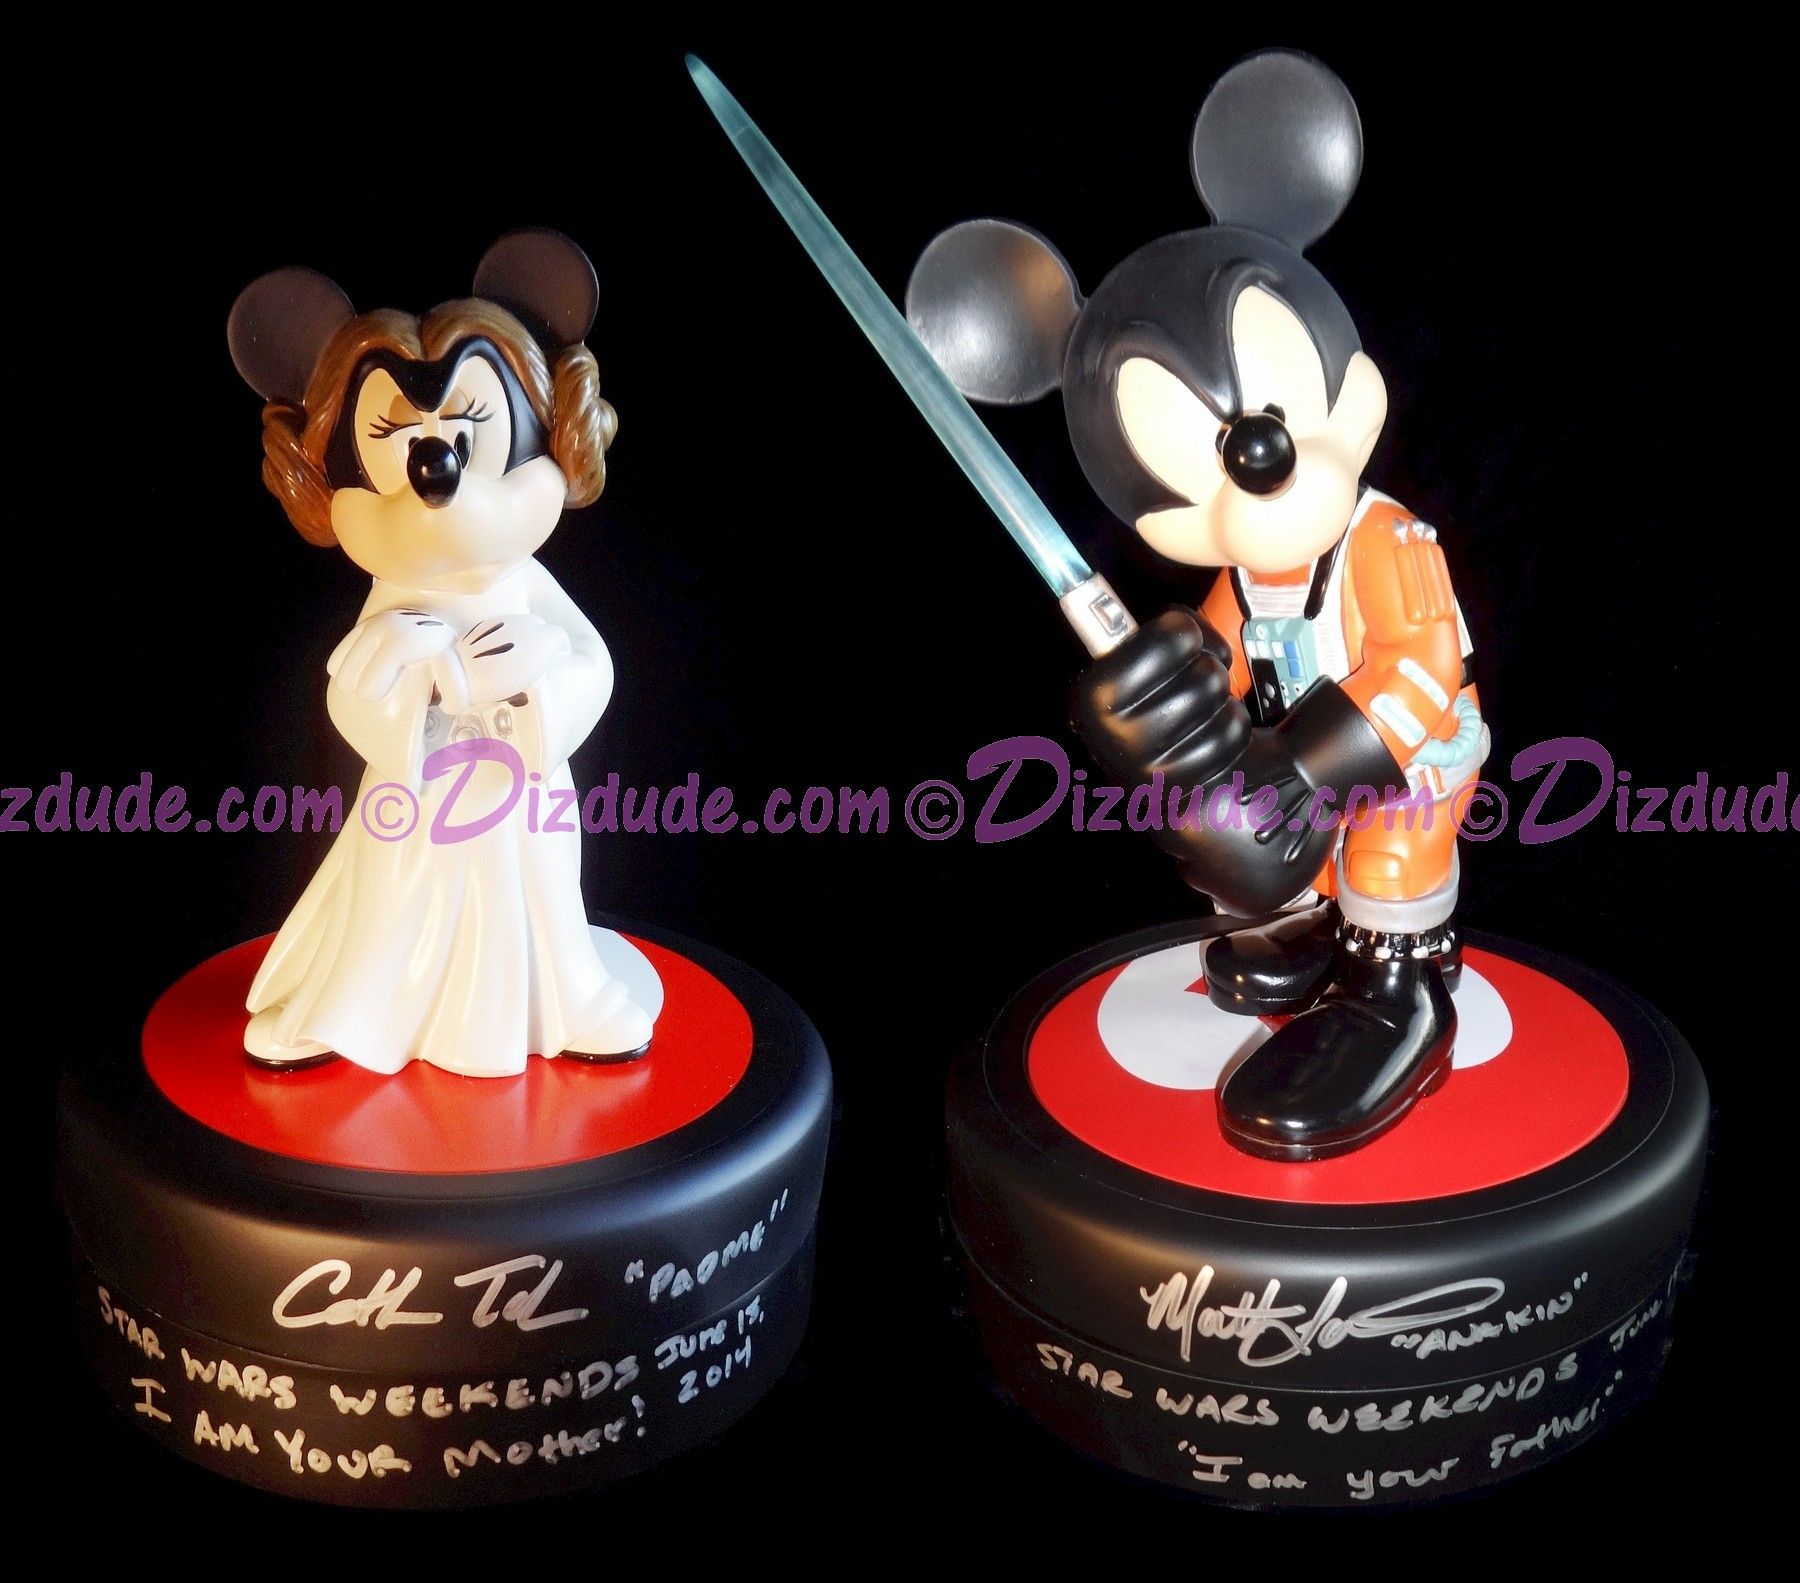 RARE Autographed Set of 1st Disney Star Wars Weekends 2011 Med. Big Figs ~ Mickey Mouse as Jedi Mickey X-Wing Pilot Signed by Matt Lanter & Minnie Mouse as Princess Leia Signed by Cat Taber Both With Pin of LE 1977 & Signed by Costa Alavezos © Dizdude.com